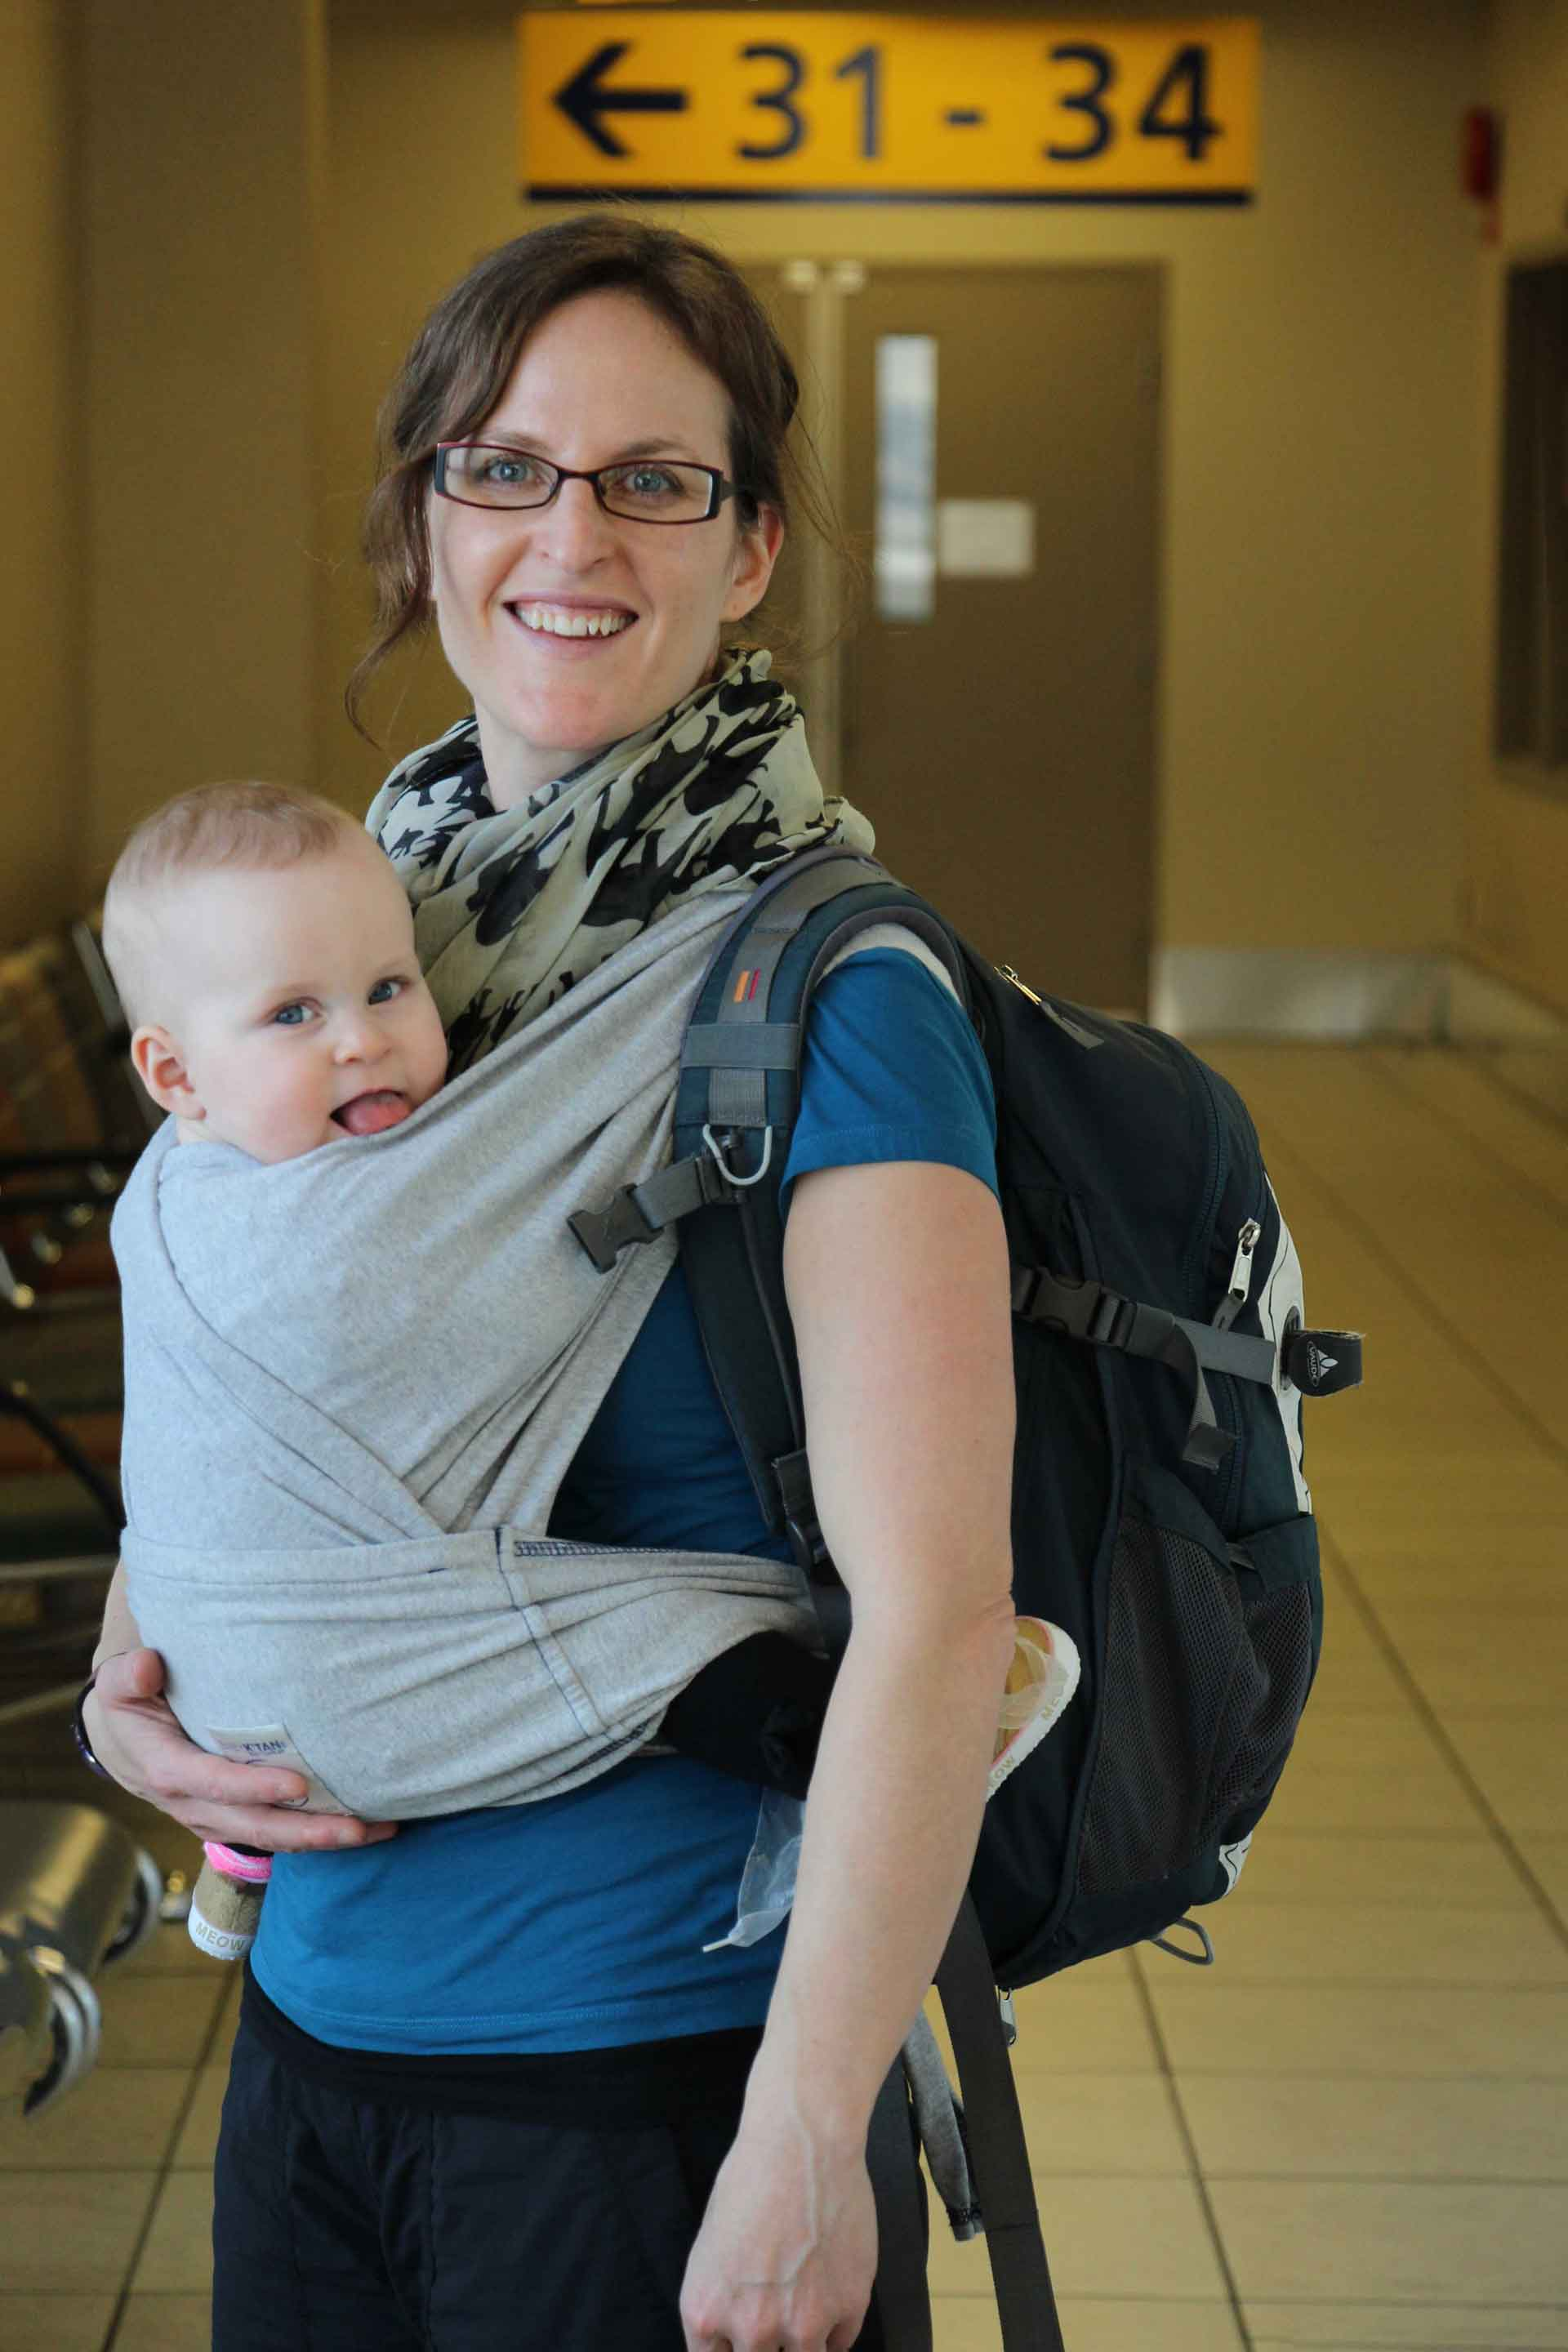 Baby in Carrier for Flight